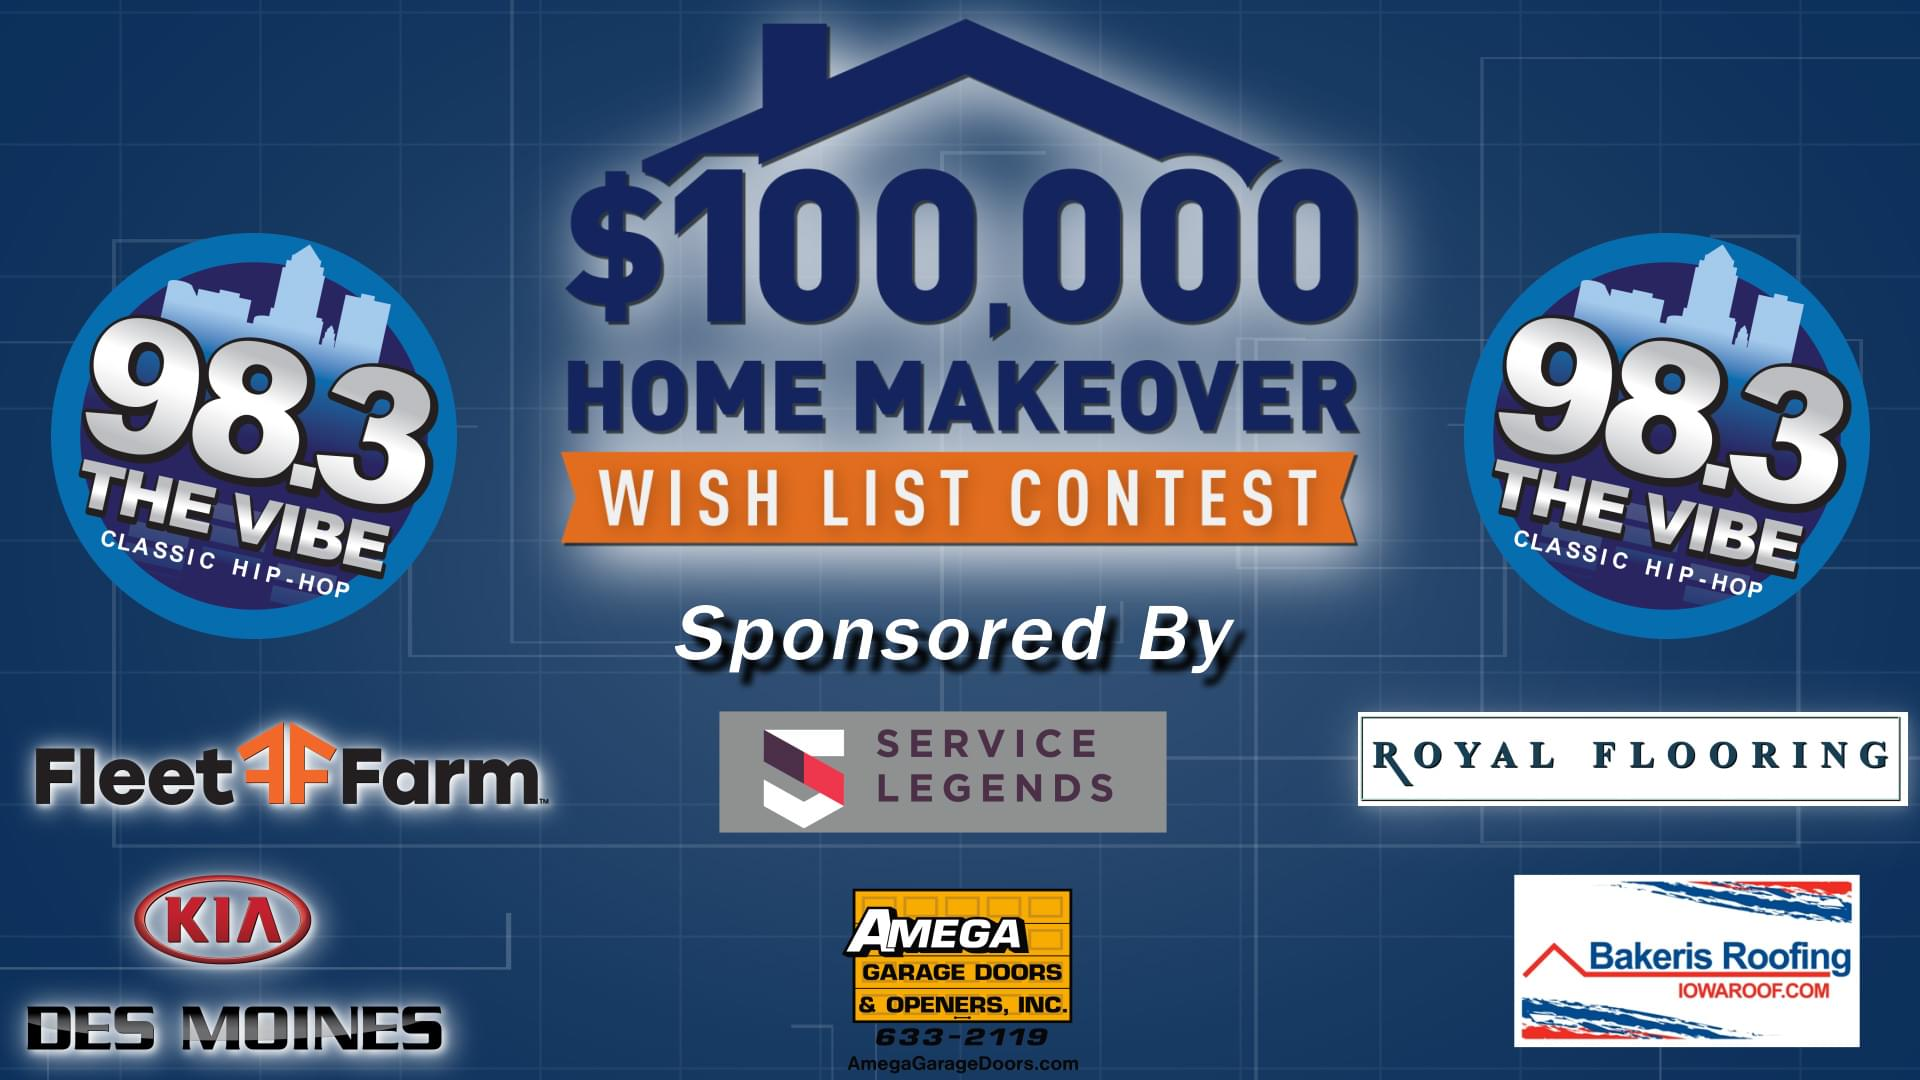 Home Makeover Wish List Contest